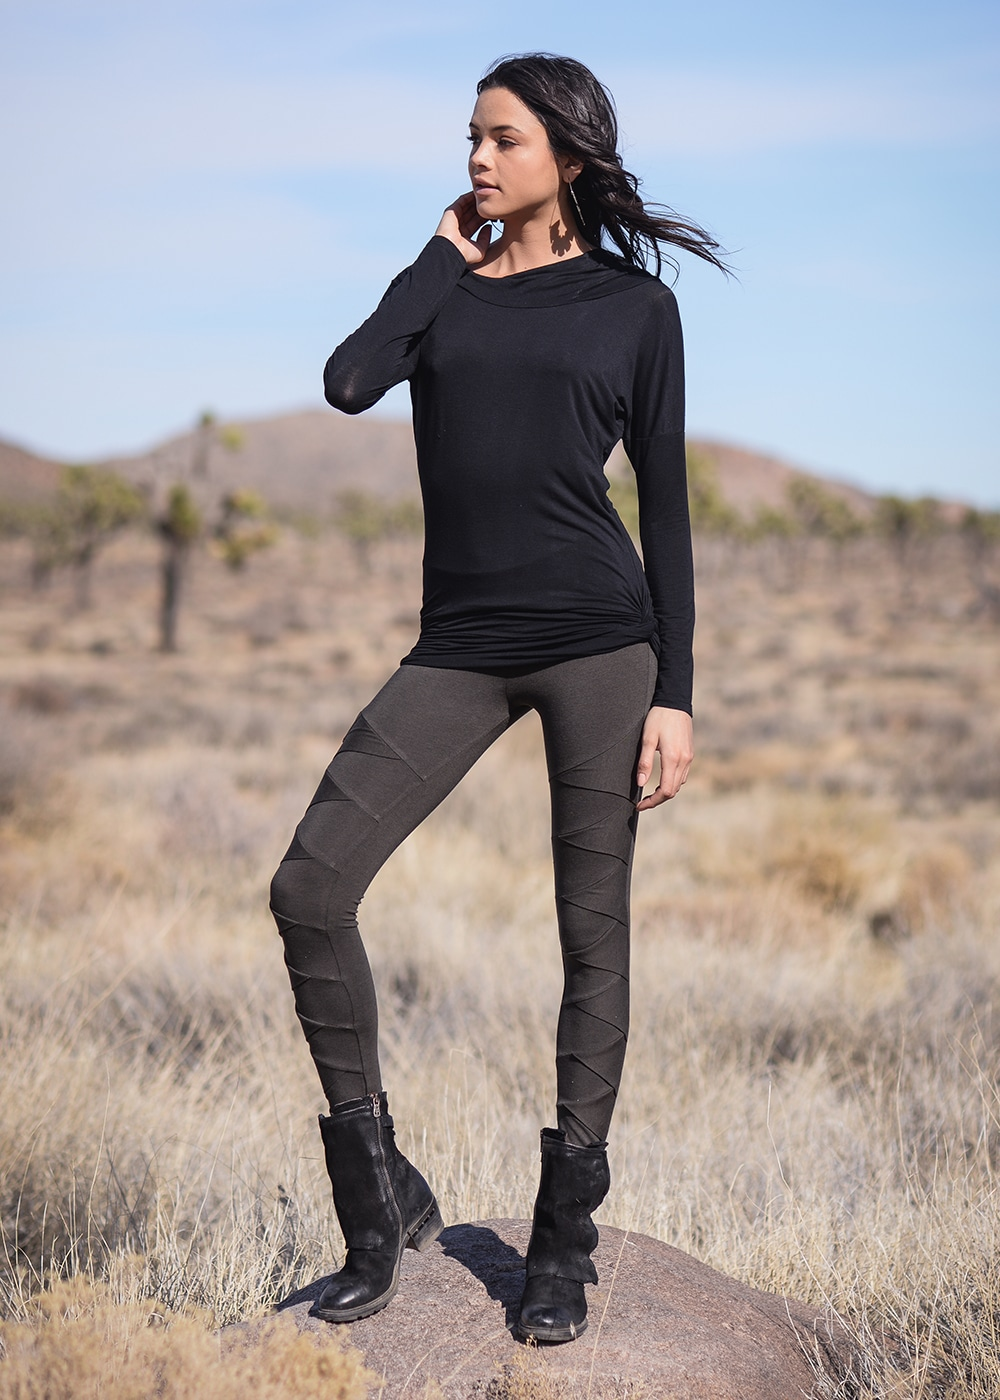 Bamboo and Organic Cotton Albacore Leggings in Grey by Nomads Hemp Wear Full Body